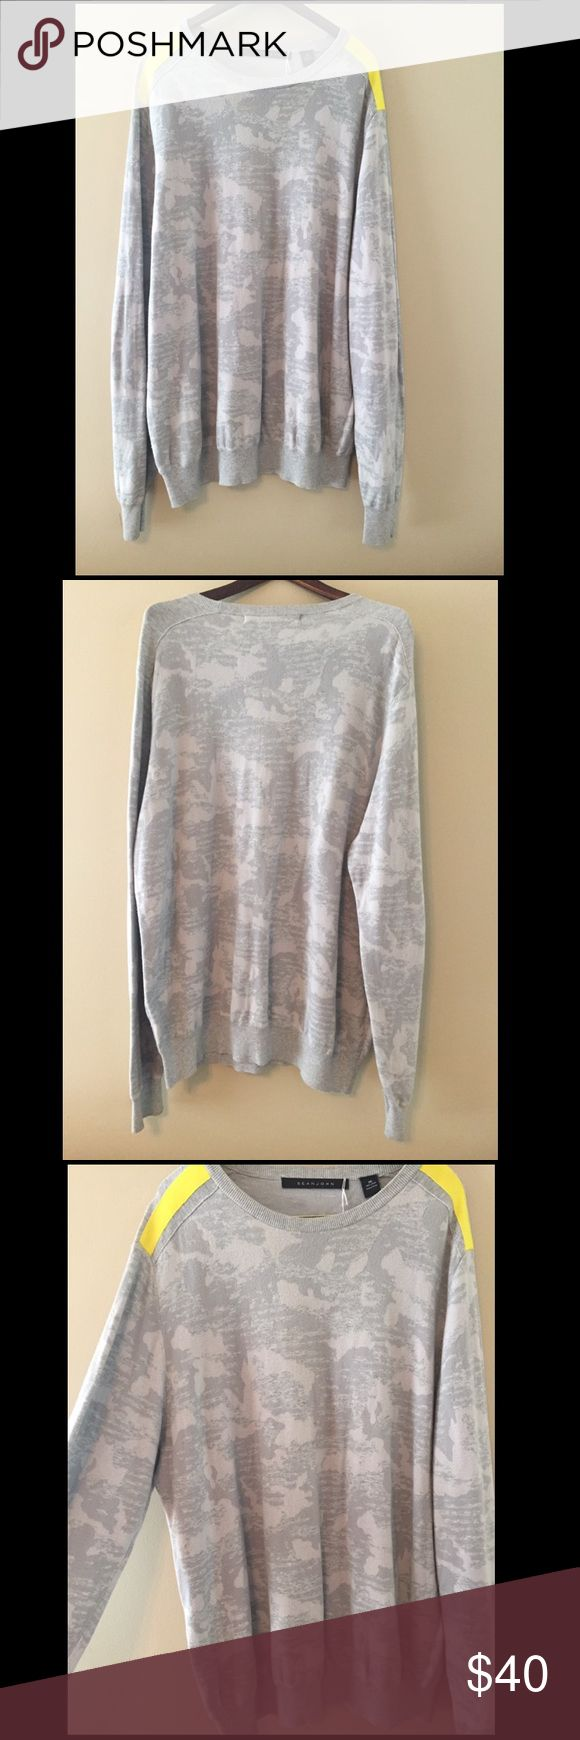 Sean John Textured Gray Big & Tall Sweater Really Nice Crew Neck Sweater! // Men's Size 3XL // Neon Yellow Stripe on Shoulder // Gray Textured Camo-Style Print Sean John Sweaters Crewneck